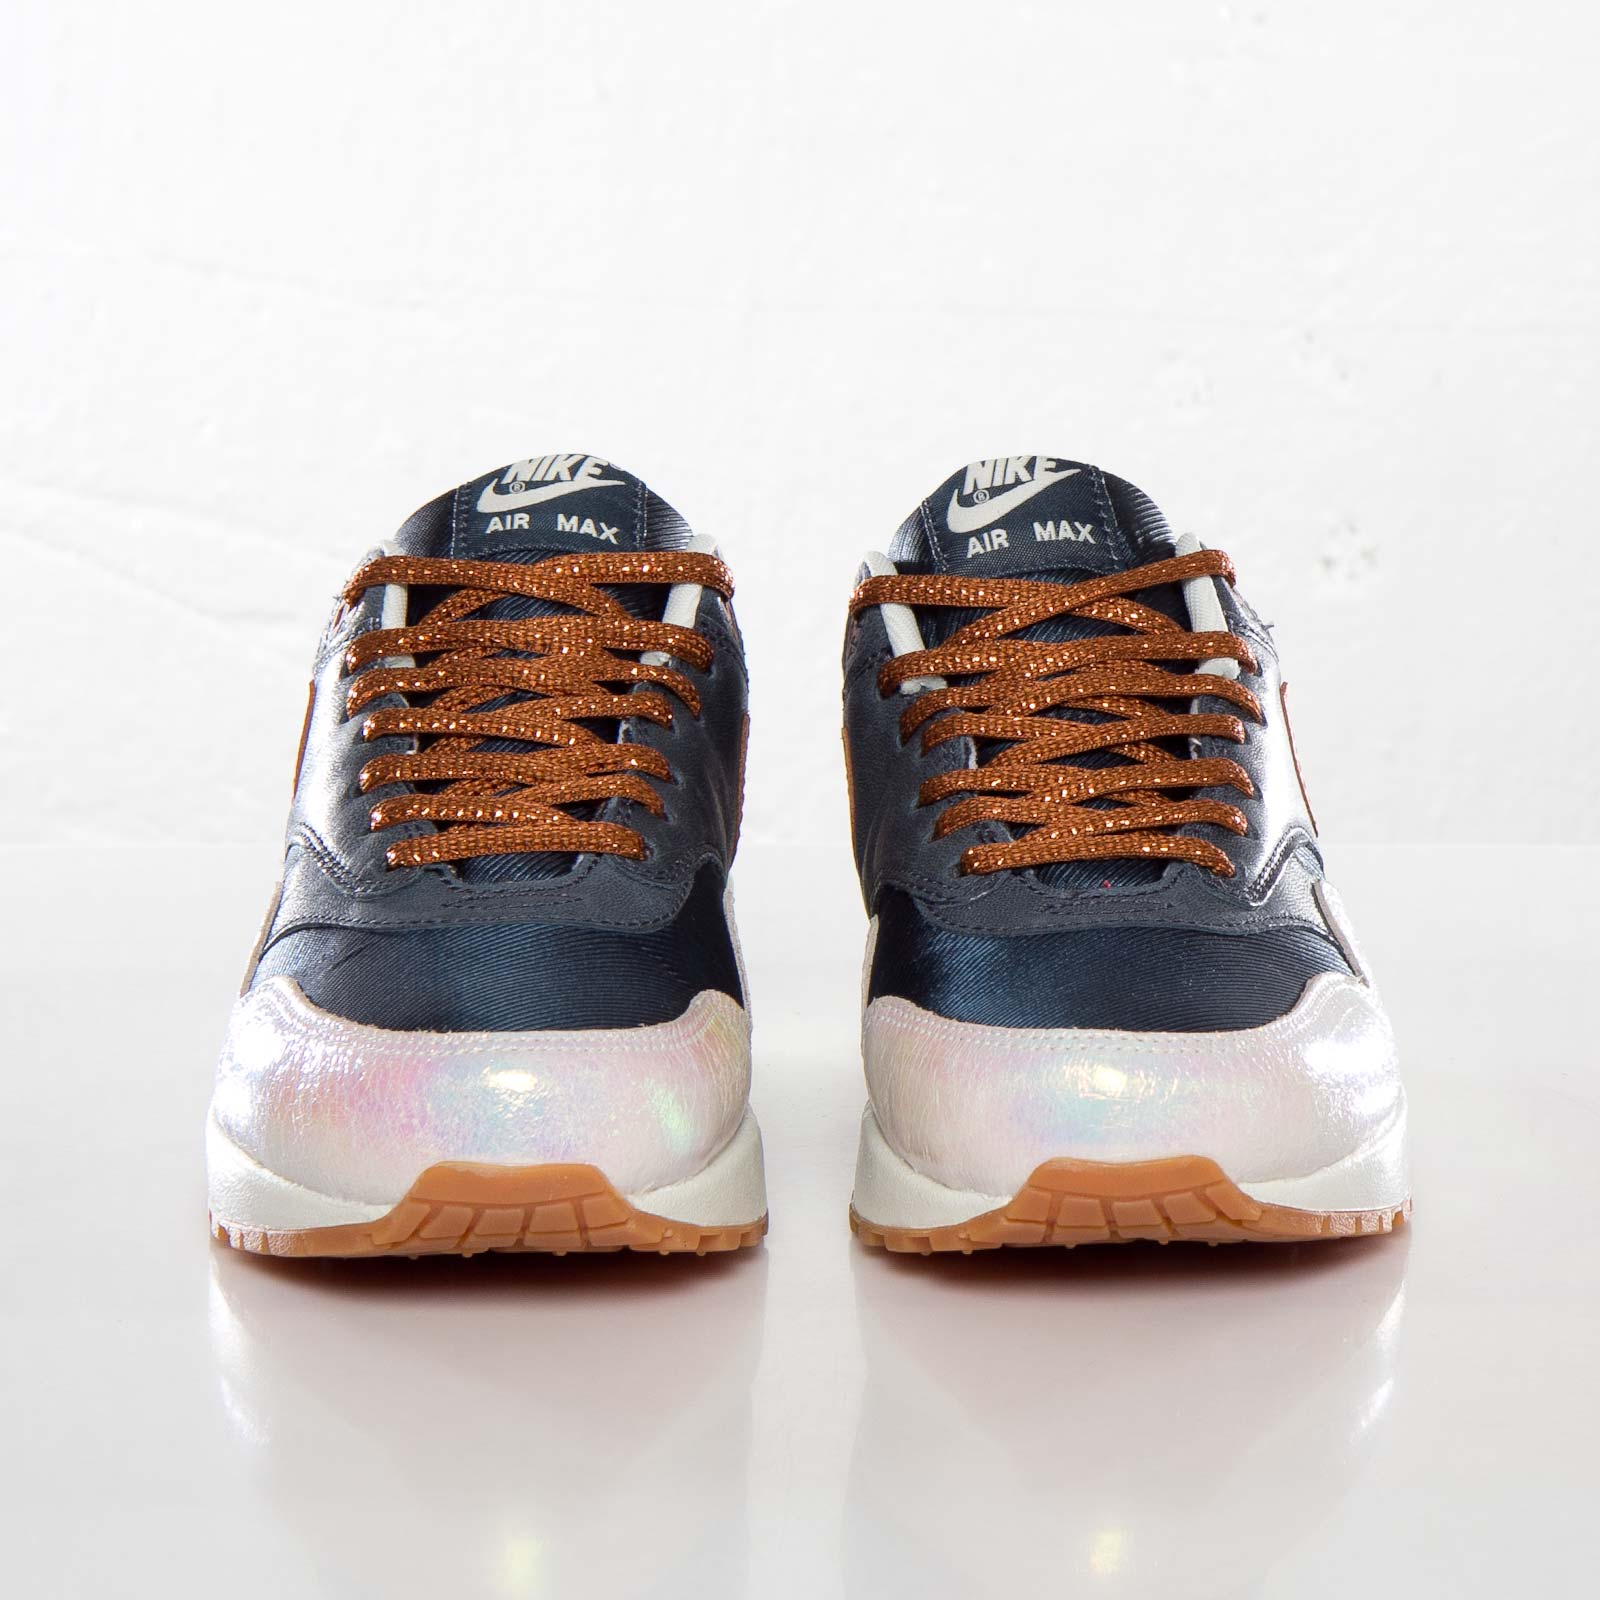 sneakers for cheap 9affe 24d79 Nike Wmns Air Max 1 Premium - 454746-400 - Sneakersnstuff   sneakers    streetwear online since 1999